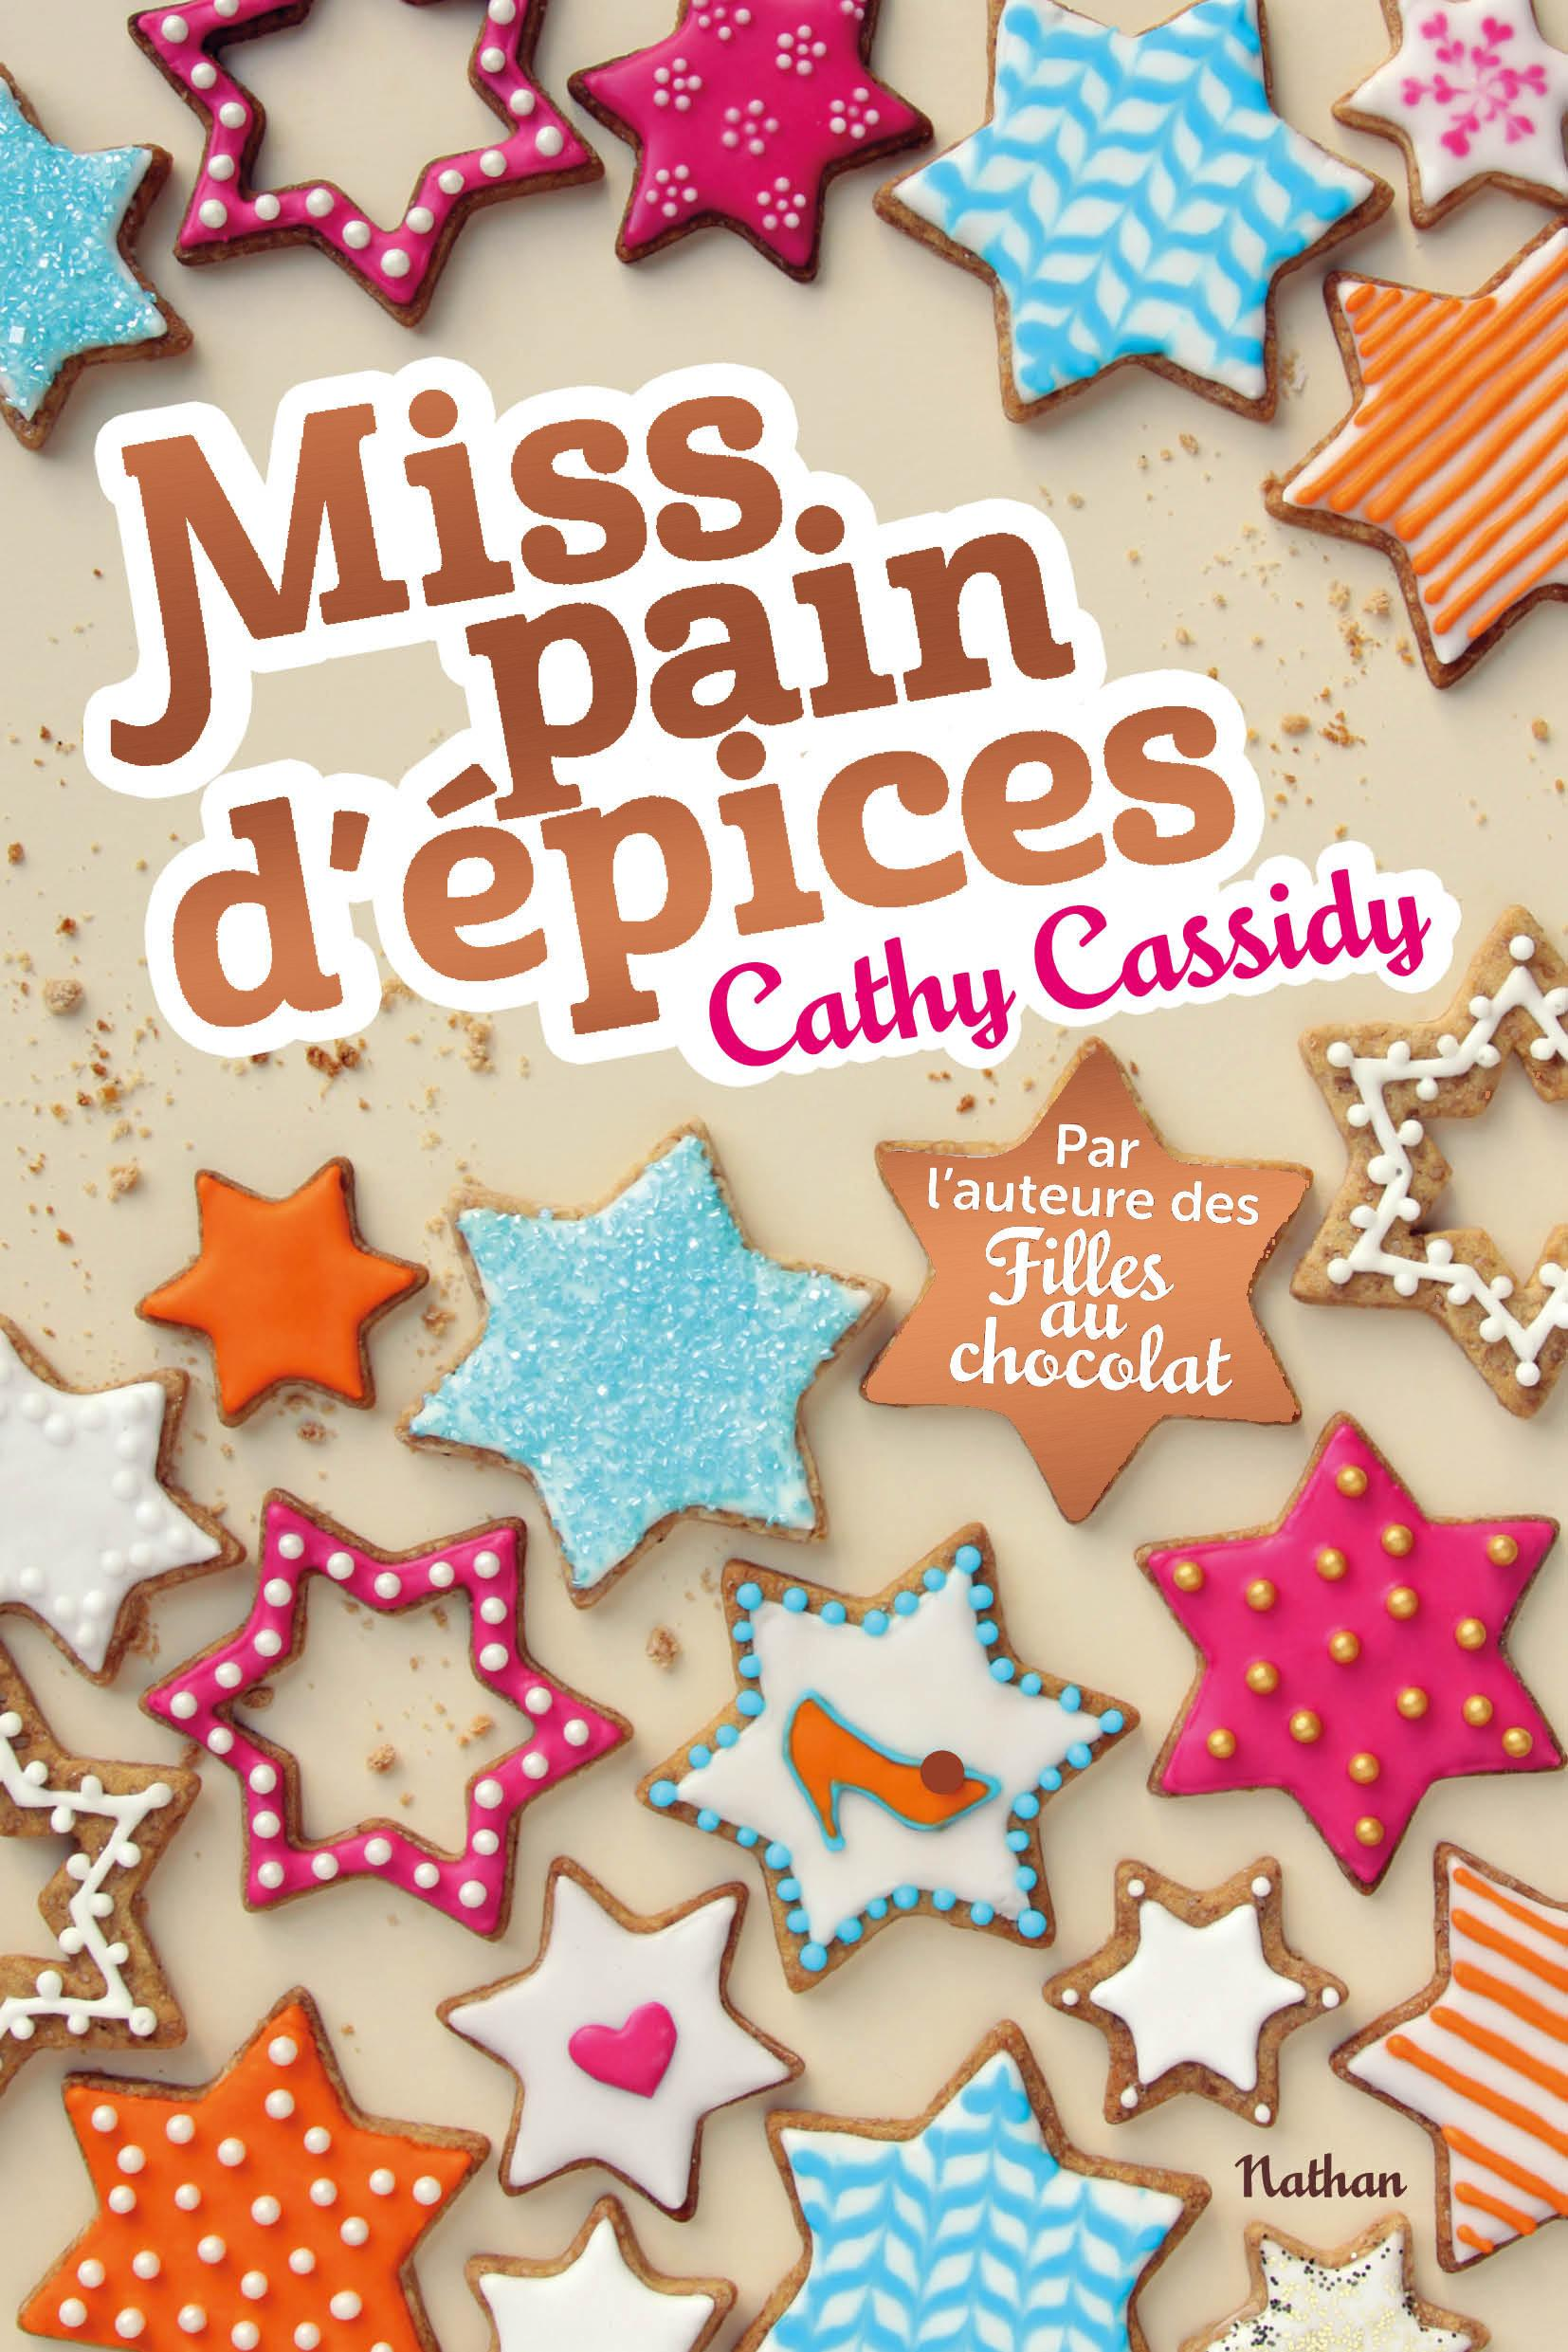 Miss pain d'épices de Cathy Cassidy